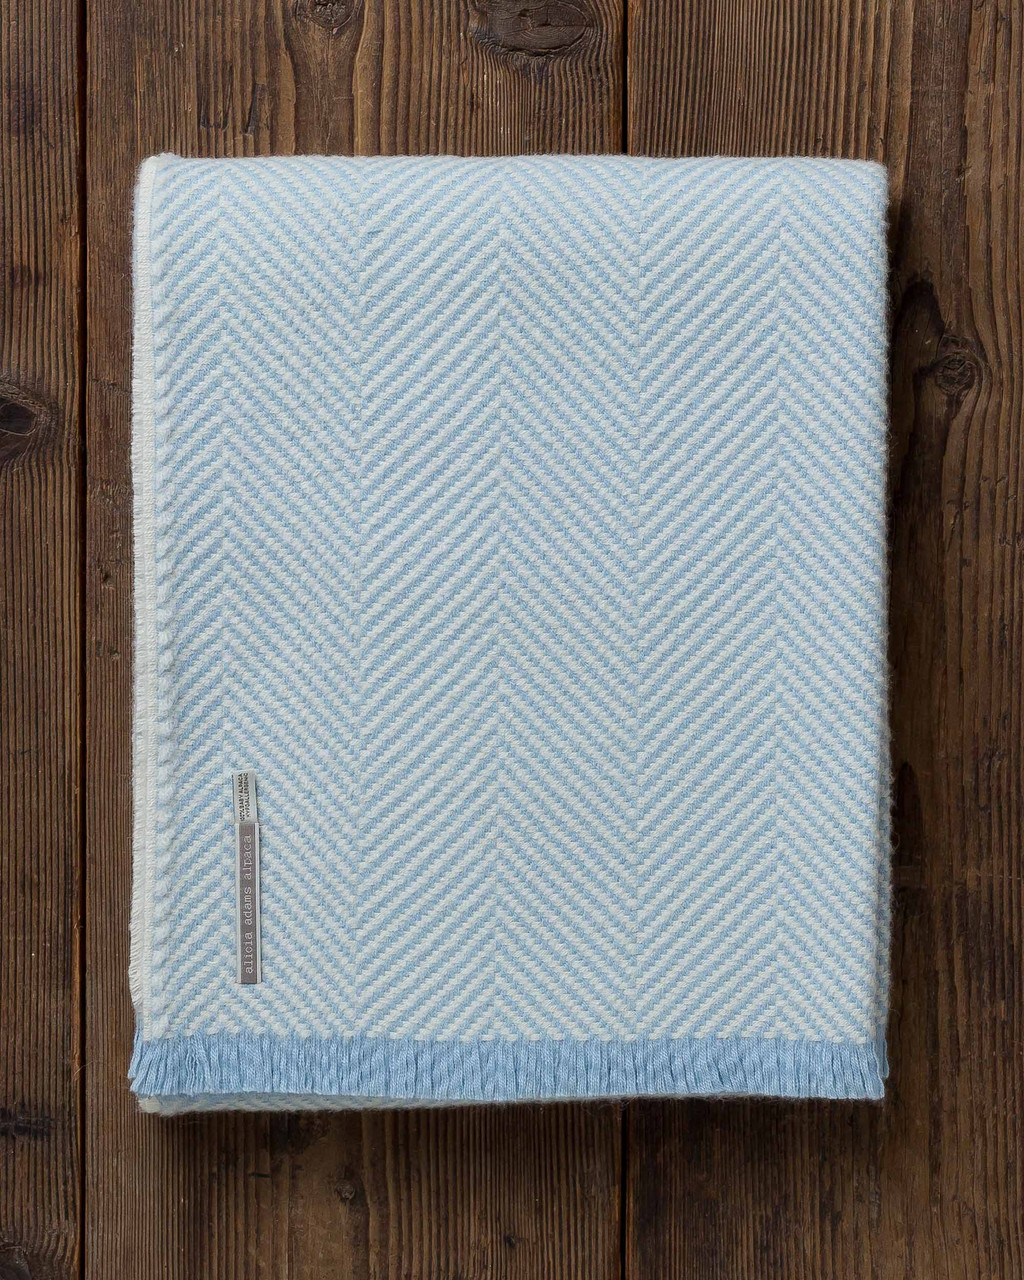 alicia adams alpaca millbrook throw, alpaca blanket, alpaca throws and blankets, 100 alpaca blanket, herringbone alpaca throw, ice blue alpaca throw